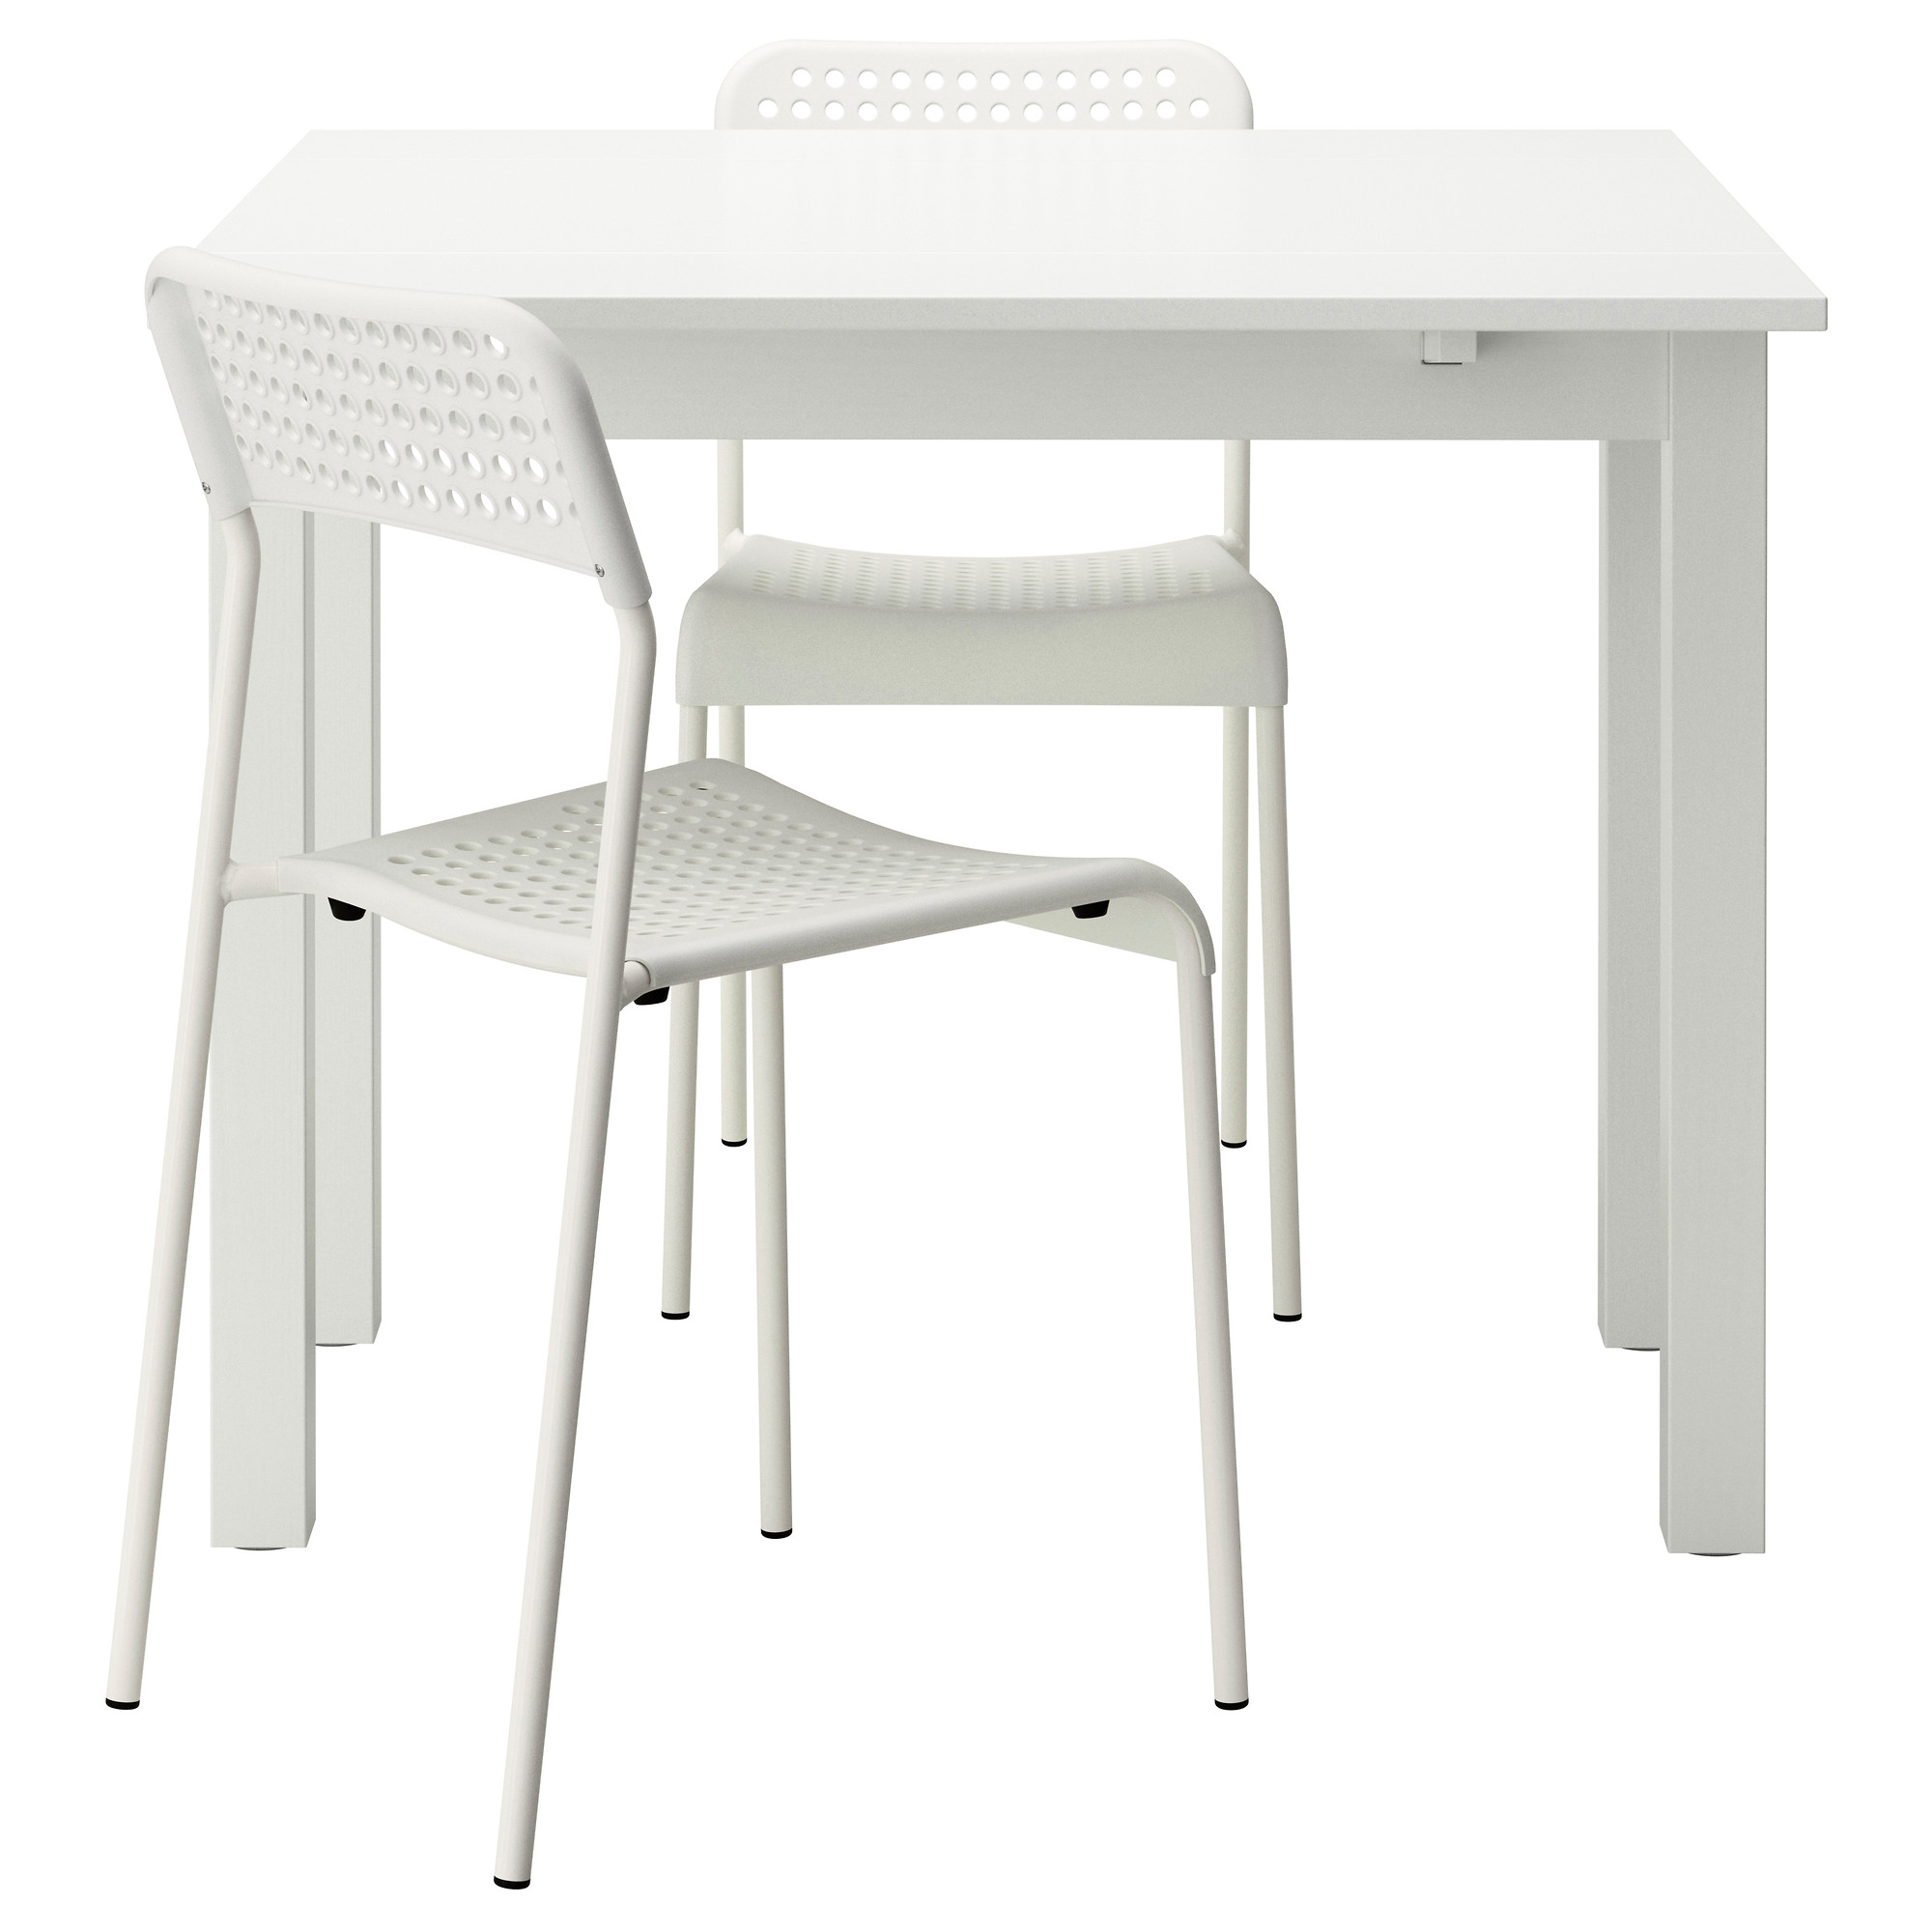 Table et chaise de cuisine ikea table chaise cuisine - Ikea cuisine table et chaise ...